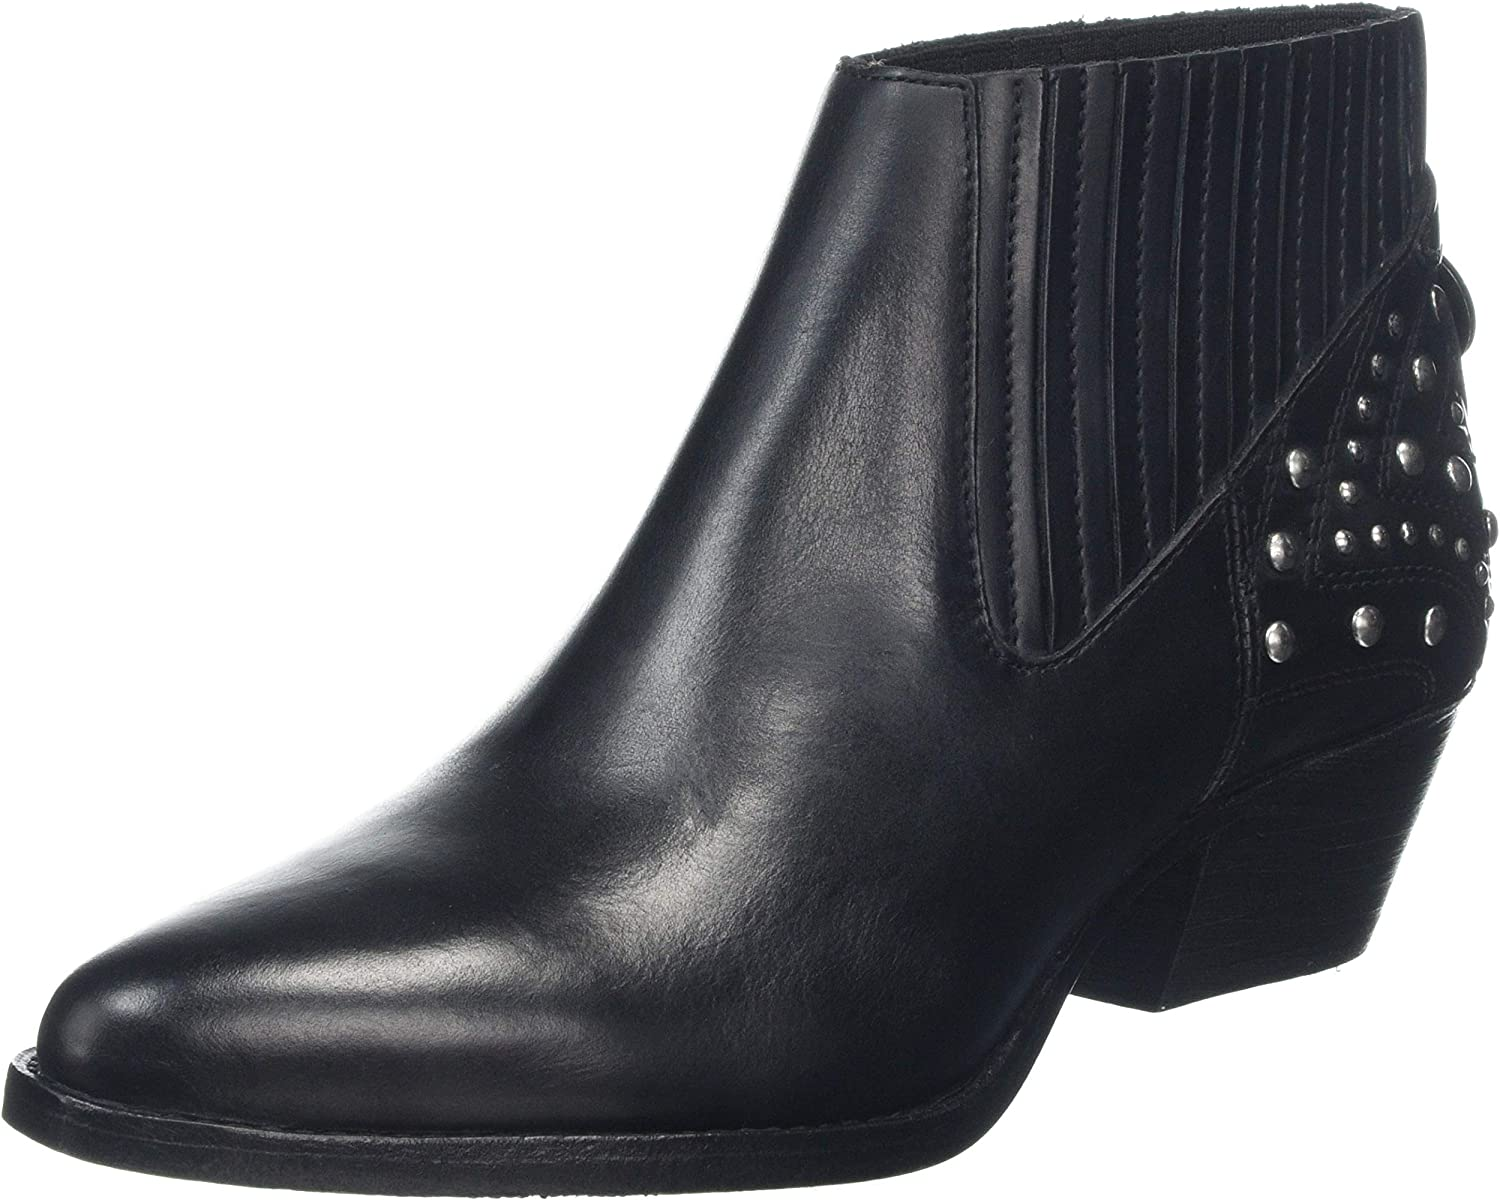 H By Hudson Women's Studded Leather Ernest Boots Black UK 7